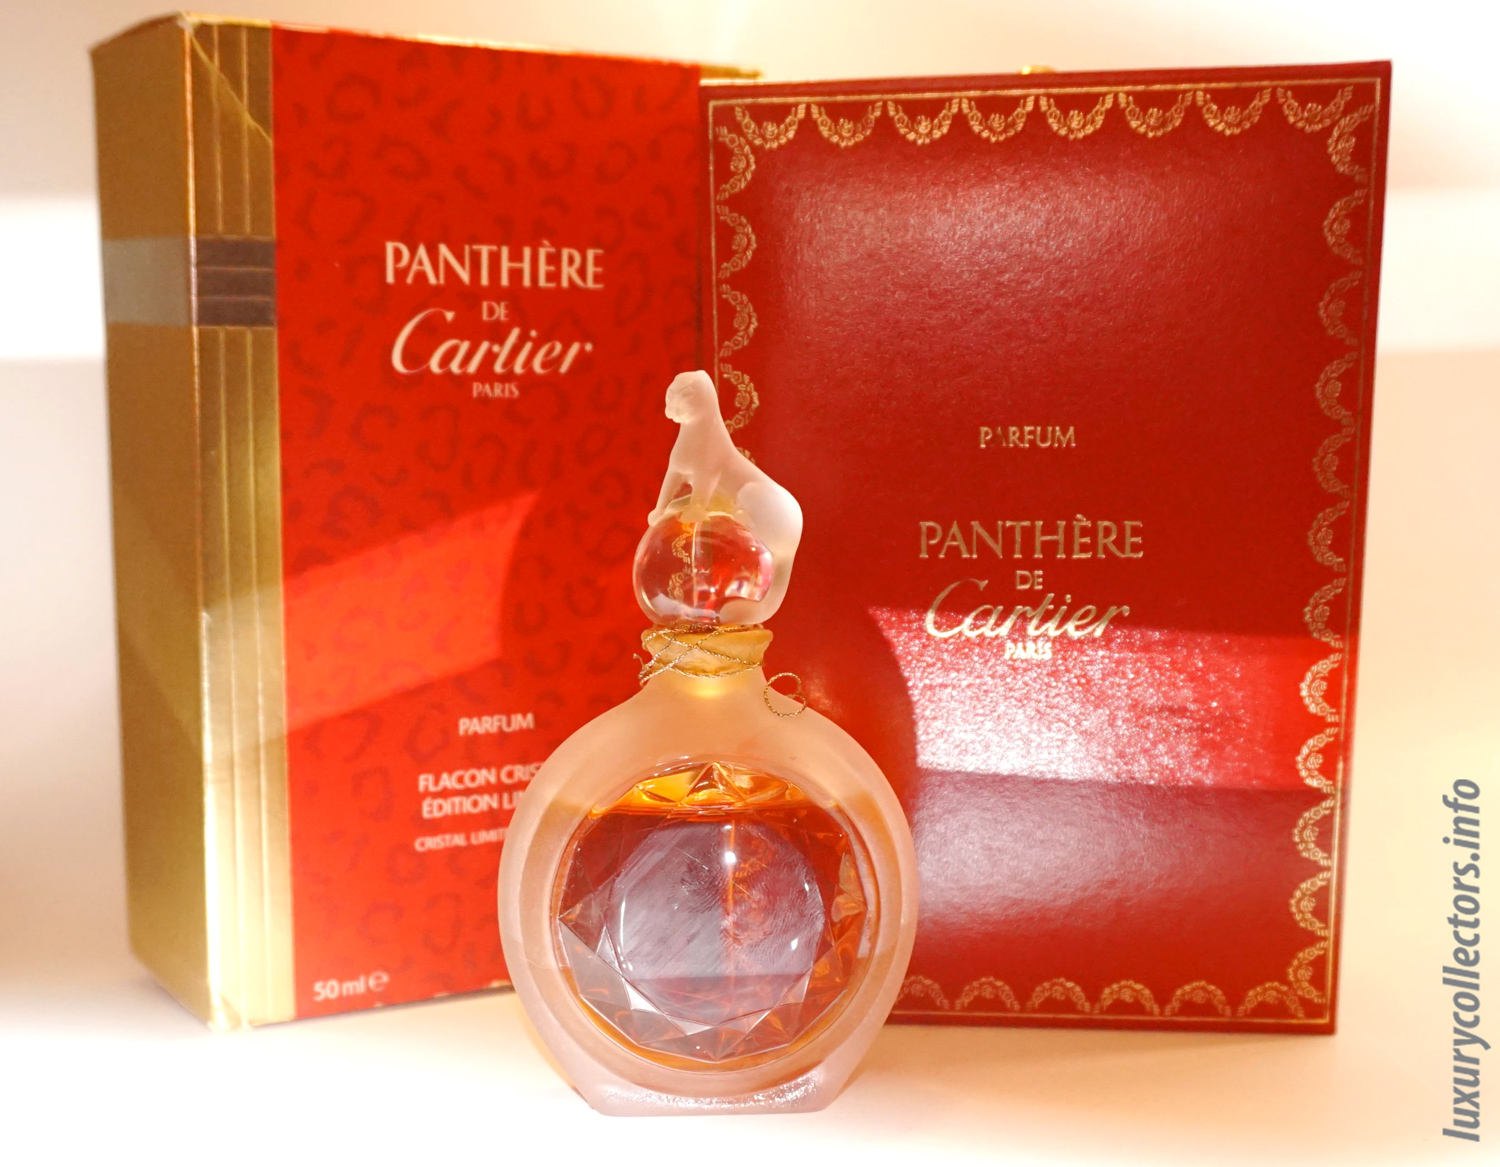 Box Carier Panthere Perfume Duchess of Windsor Pin Crystal Limited Edition bottle jewel